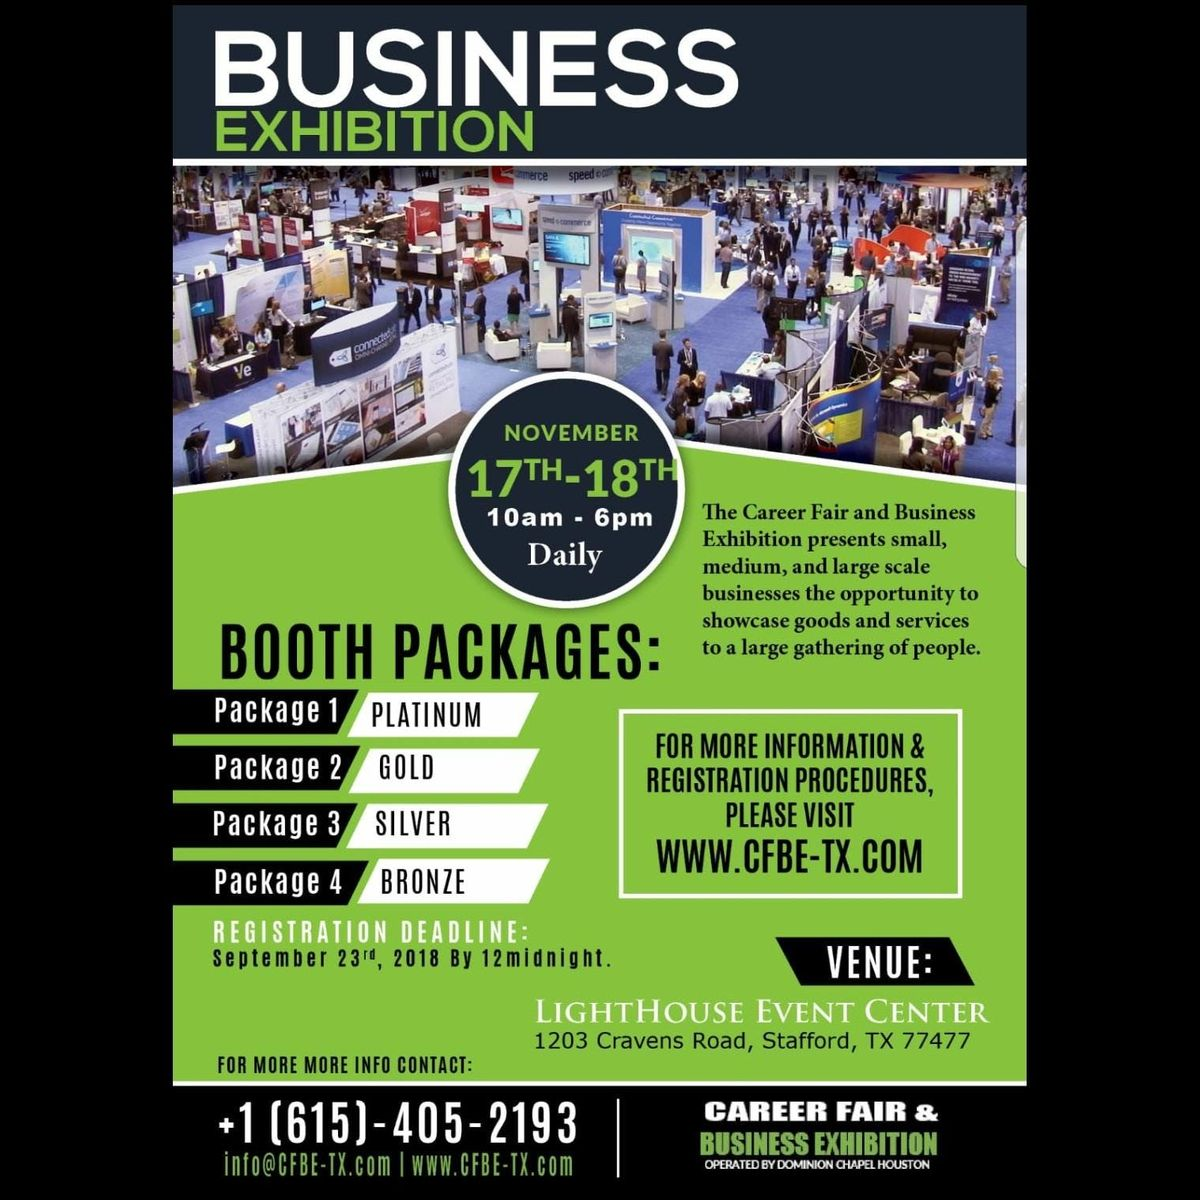 FREE TO ATTEND Job Fair & Business Exhibition